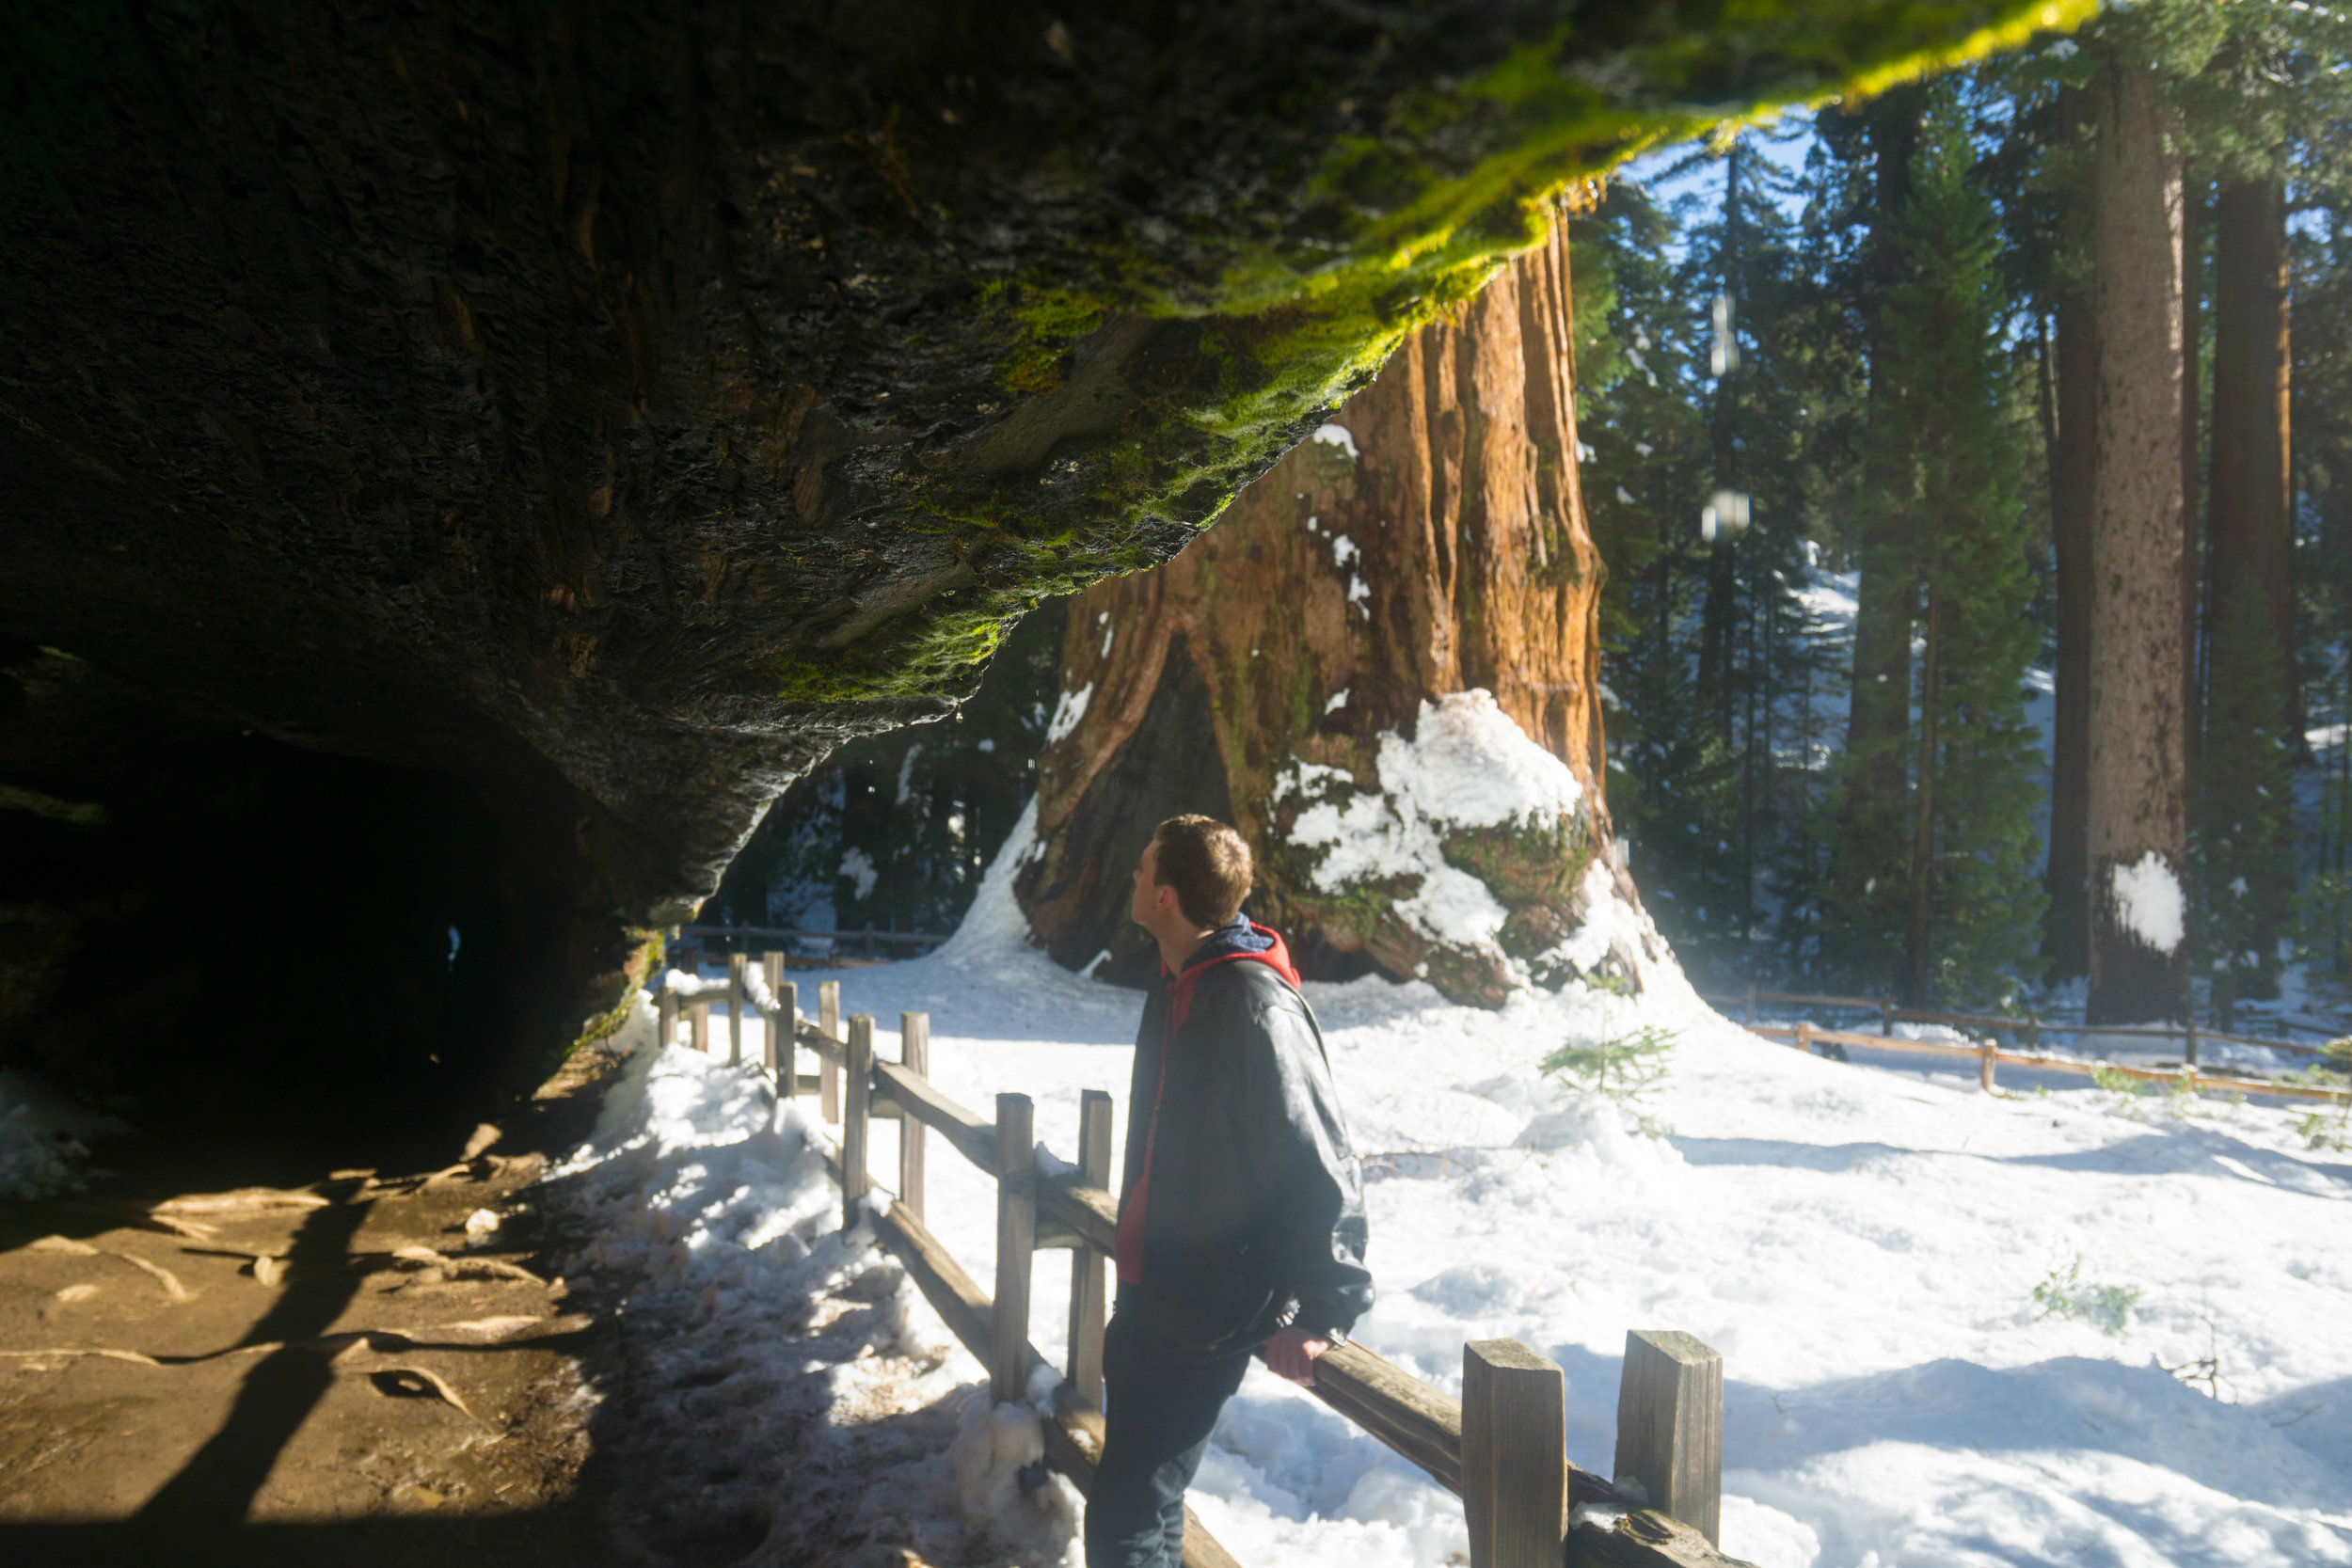 The Mark Twain tree is so large in fact, that it acts as a tunnel through Grant Grove.